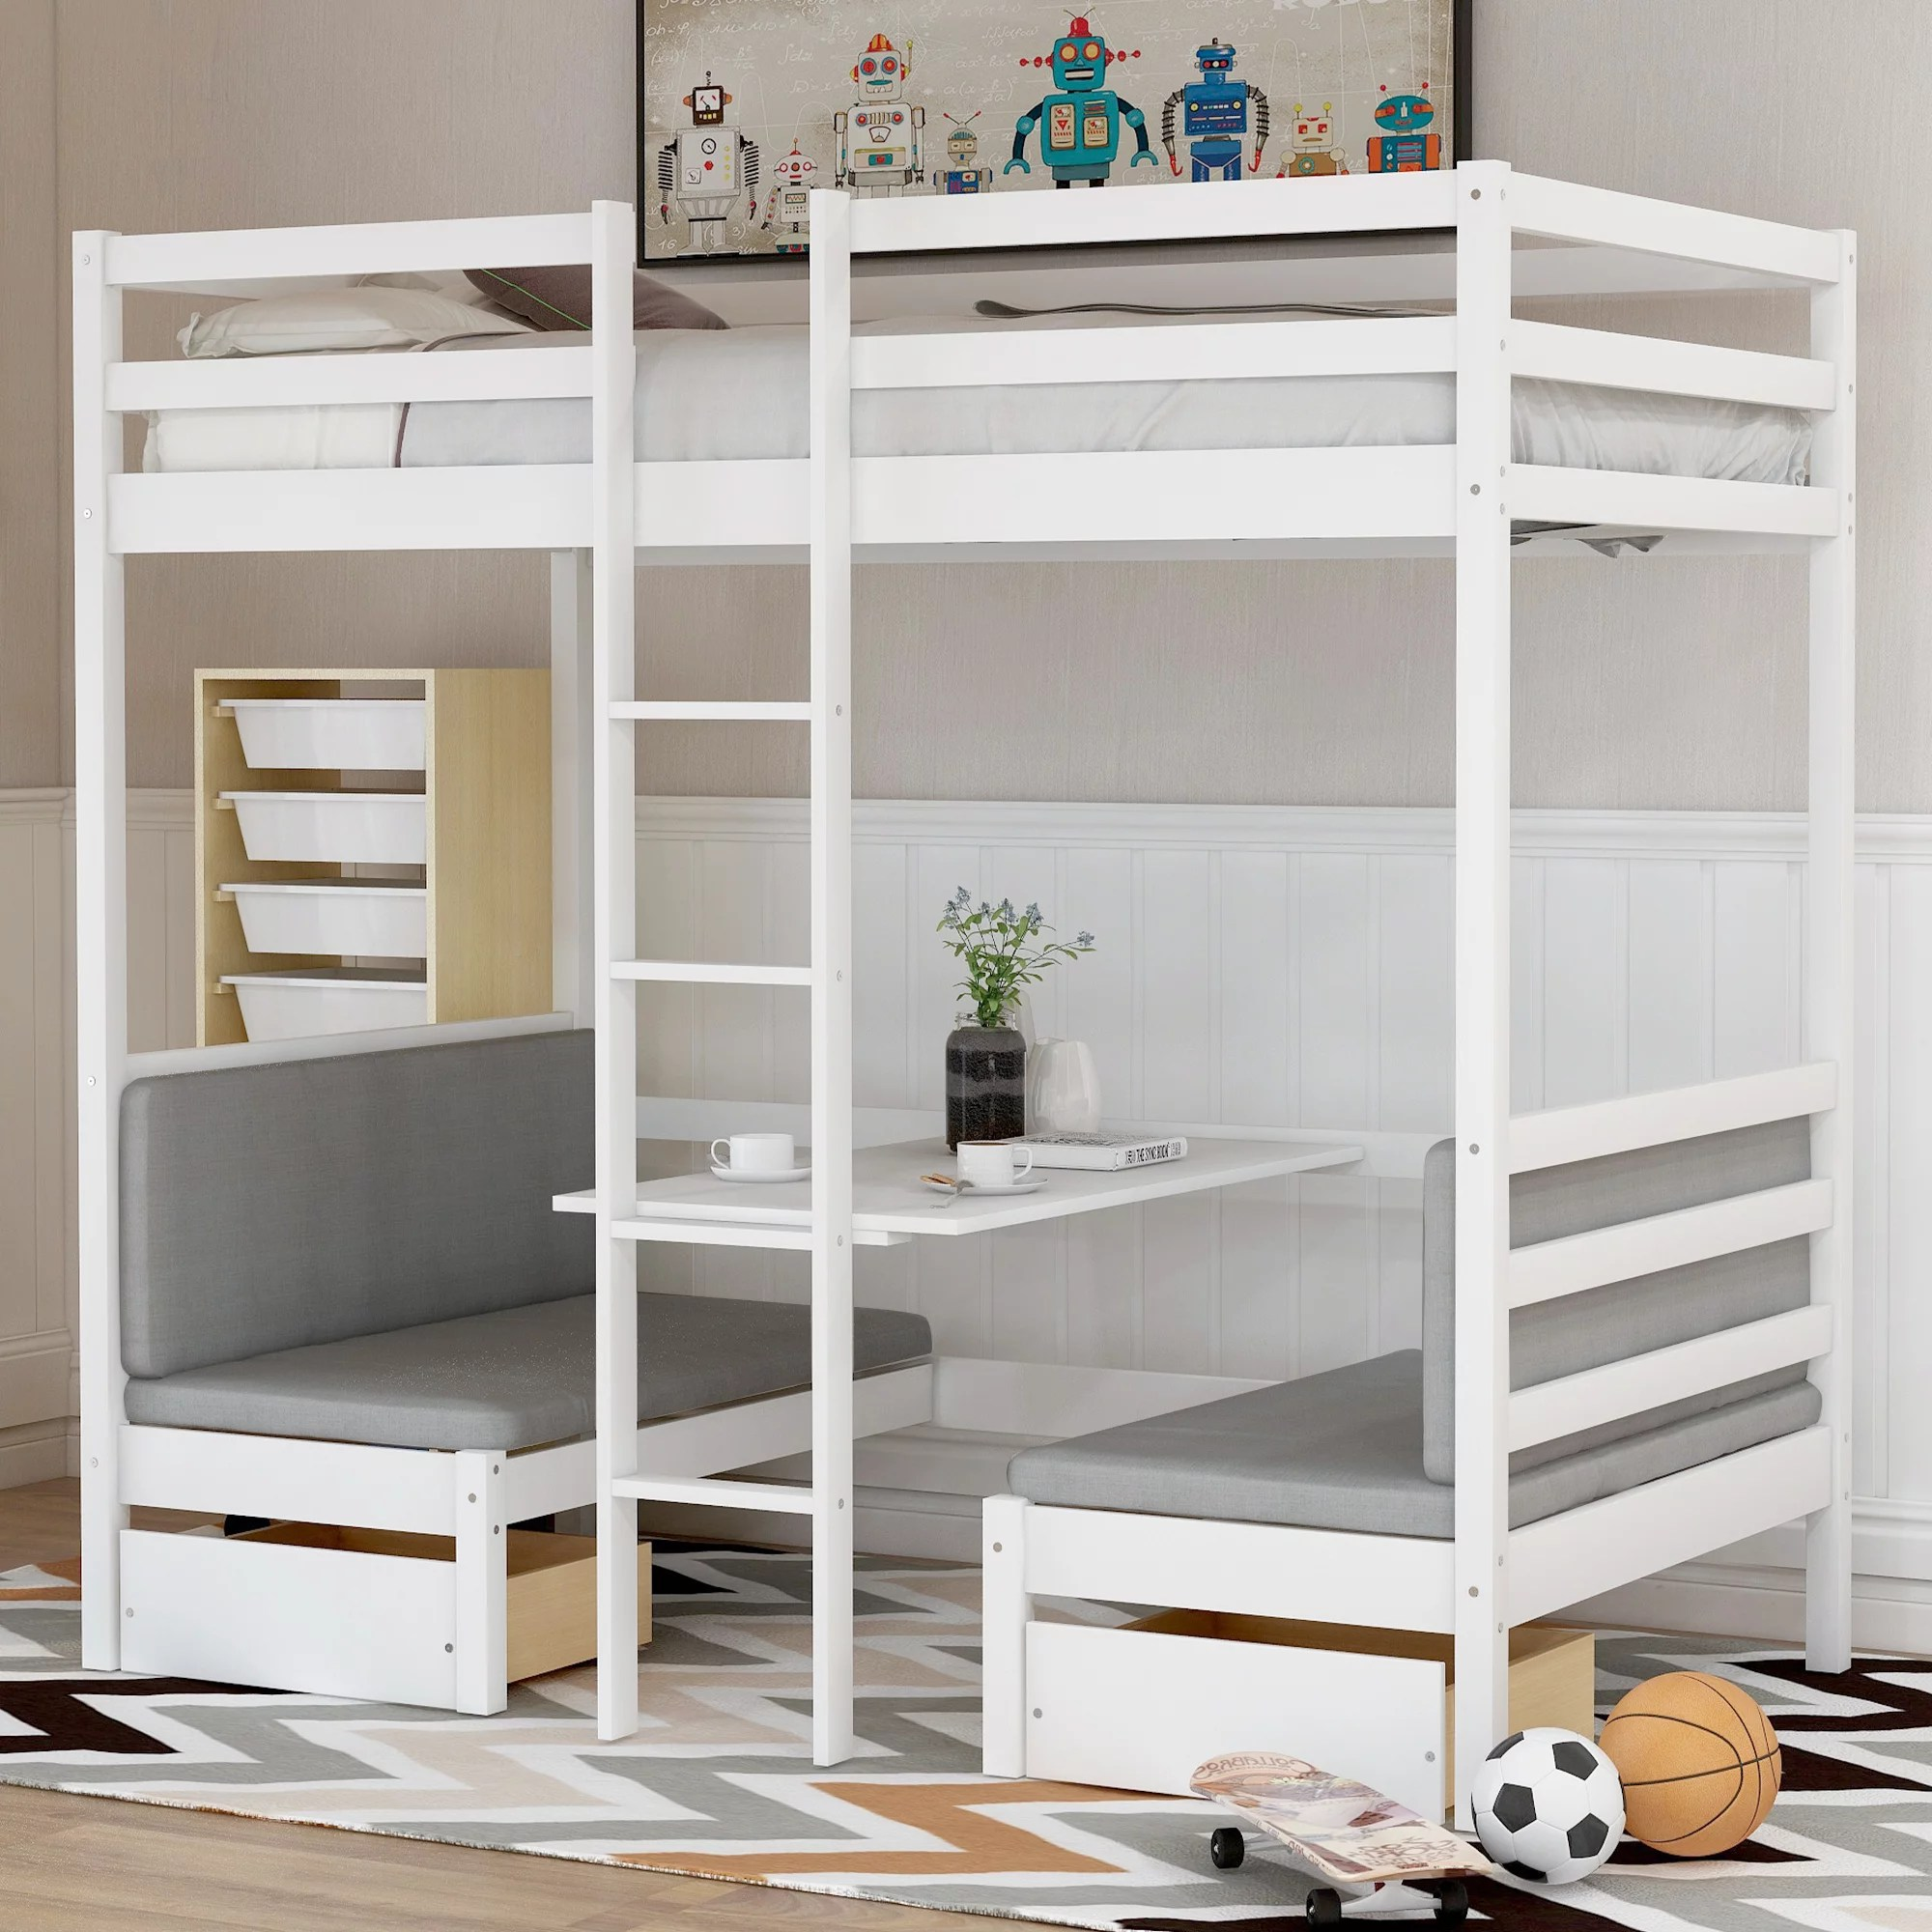 Euroco Adjustable Solid Wood Twin Over Twin Bunk Bed Convertible Loft Bed With Two Drawers Walmart Com Walmart Com